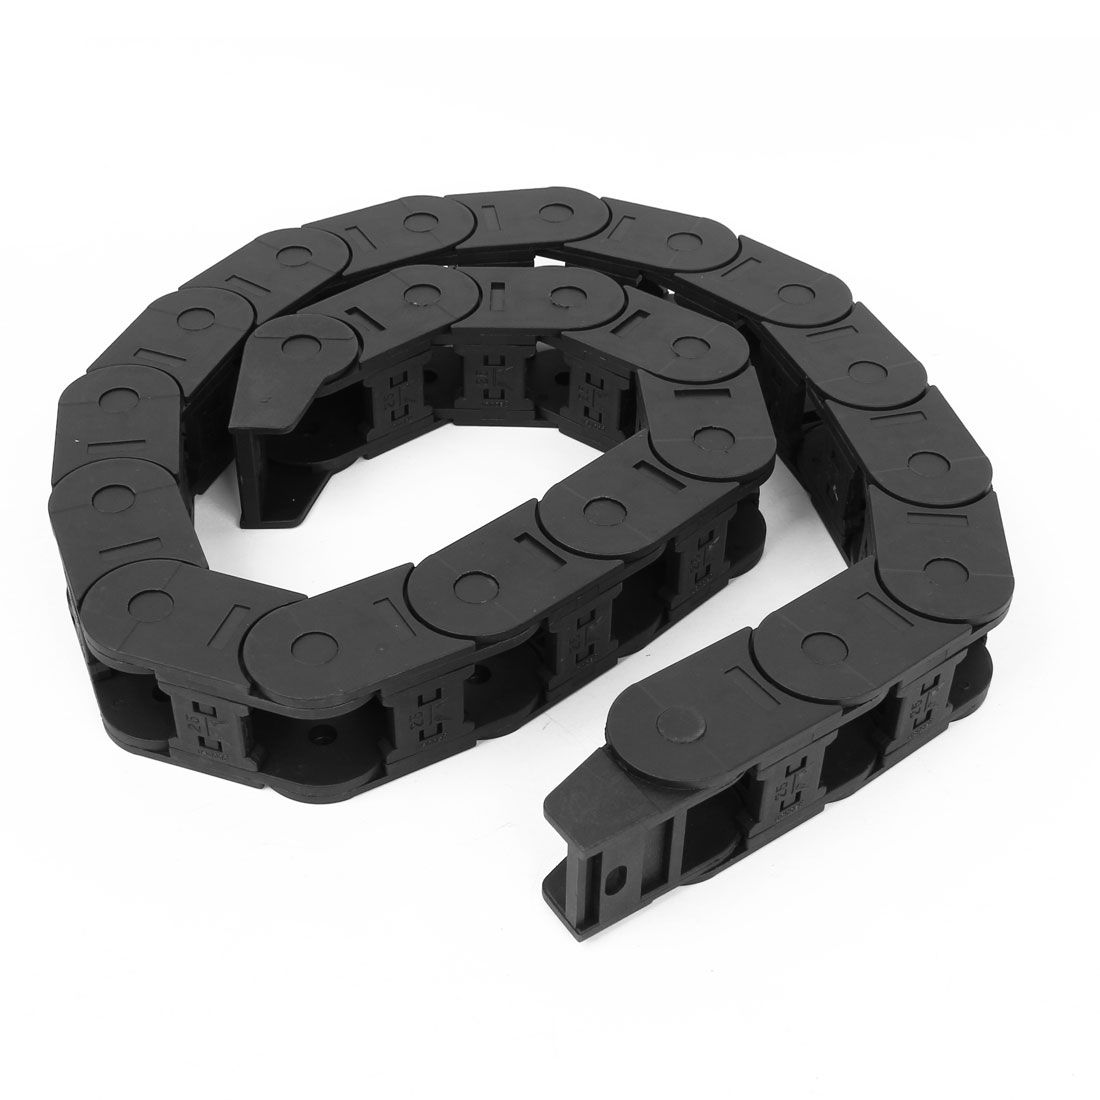 Black Plastic Drag Chain Cable Carrier 25 x 25mm for CNC Machine